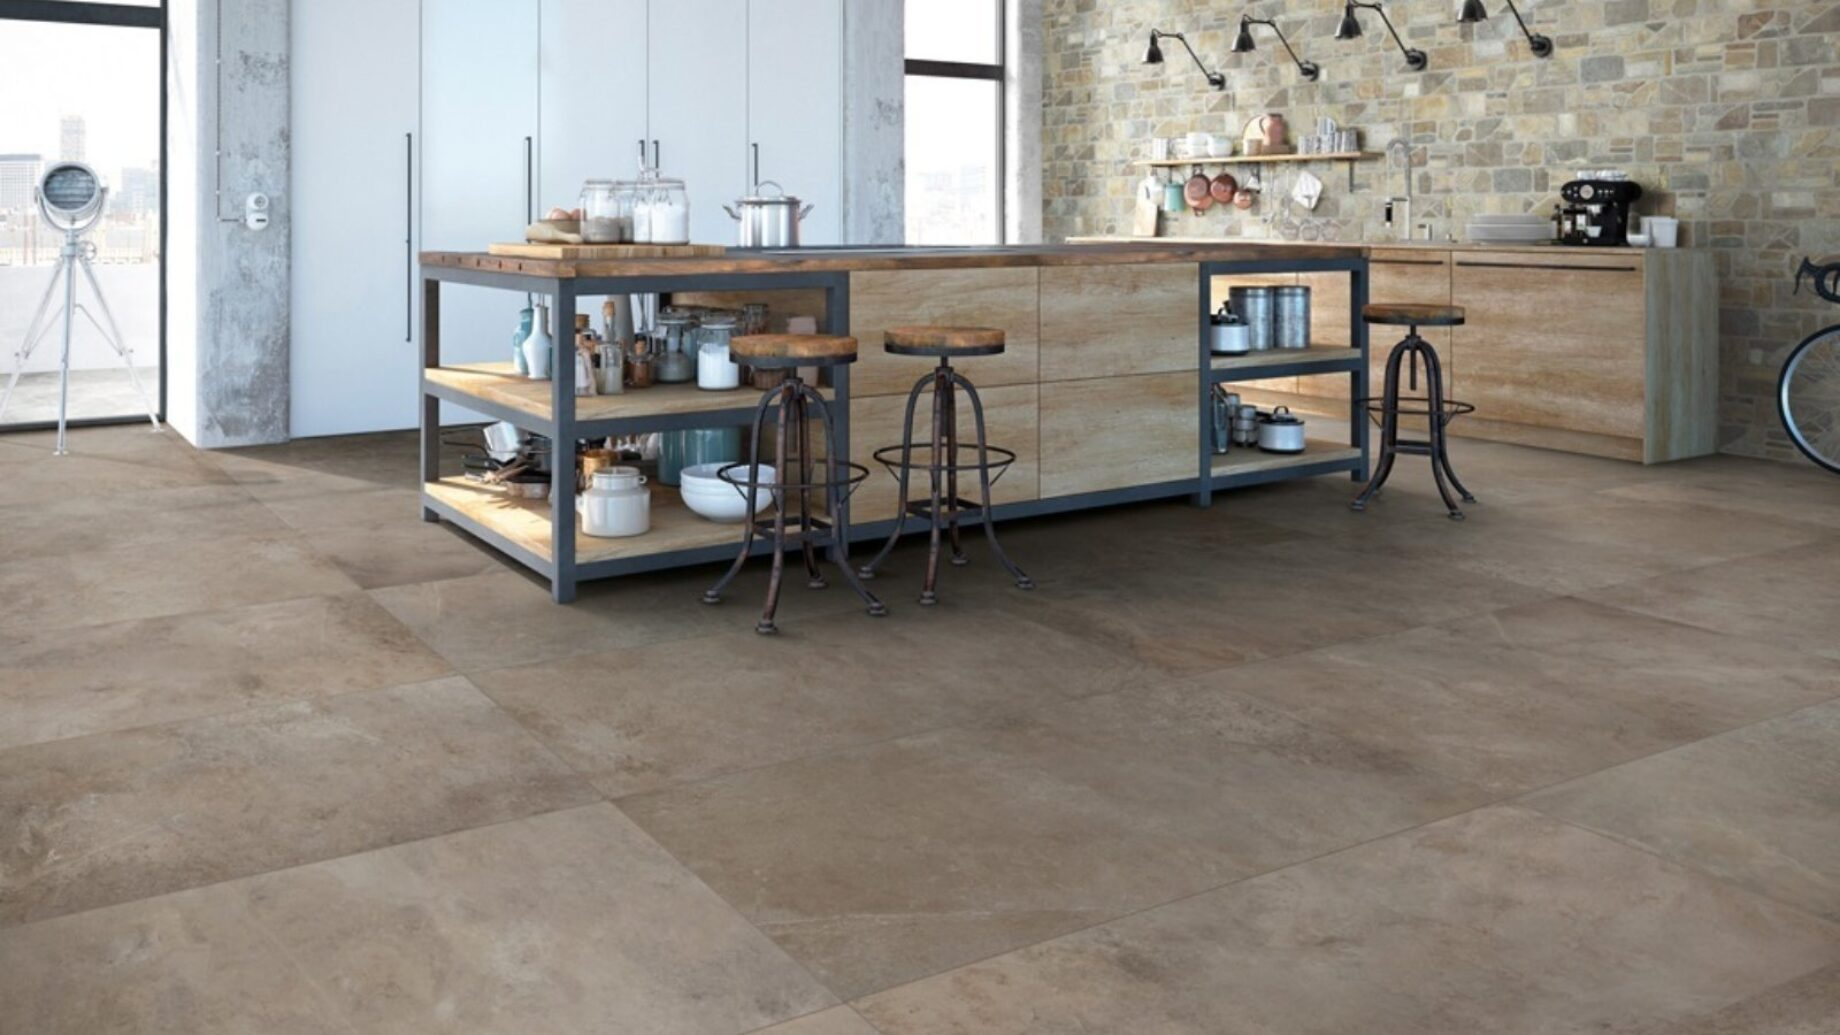 How to choose Tiles for Your Kitchen